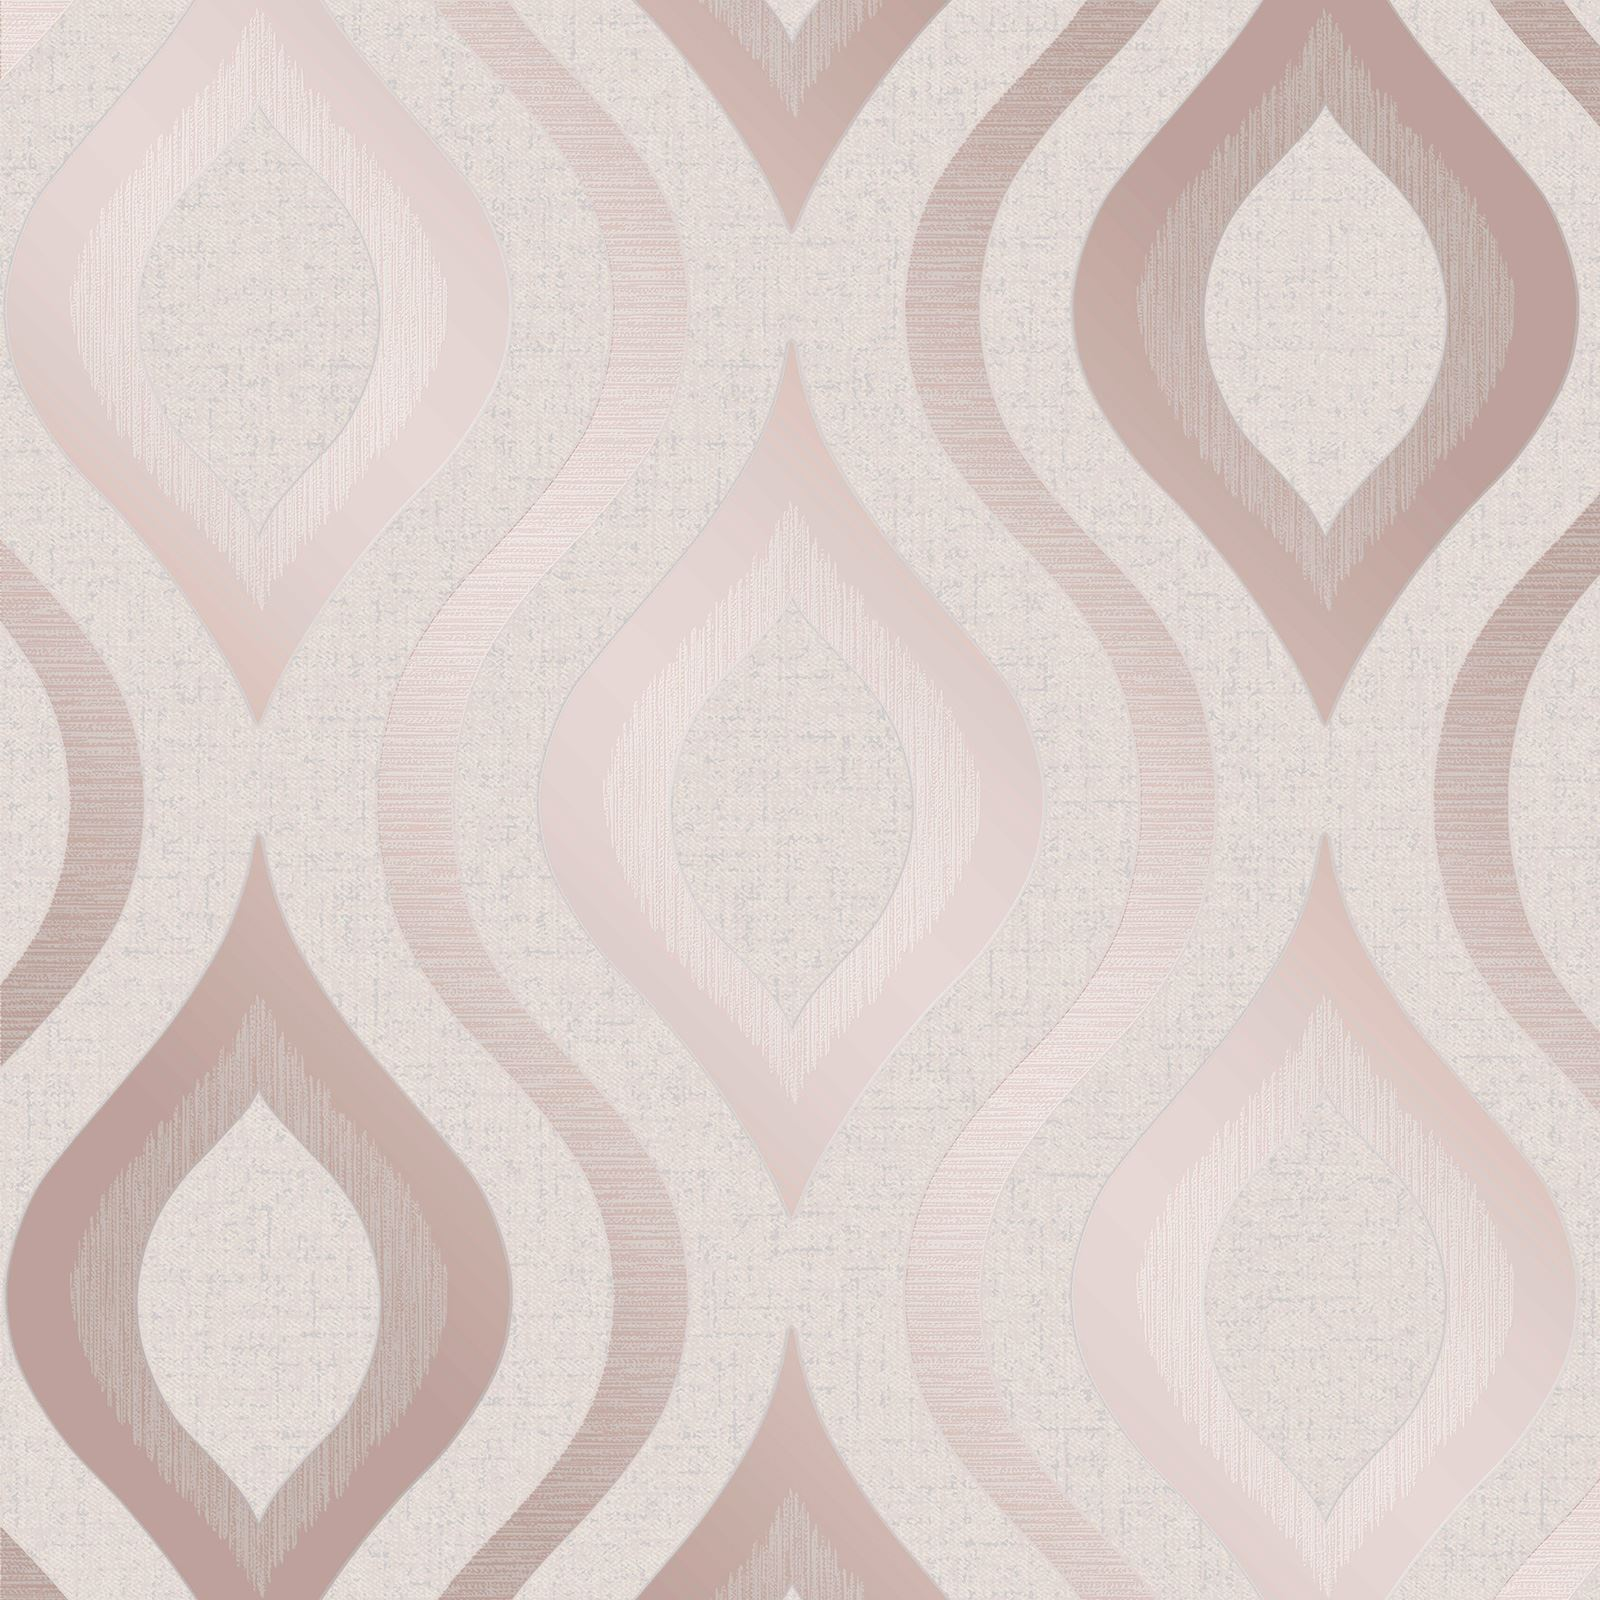 QUARTZ GEOMETRIC WALLPAPER ROSE GOLD - FINE DECOR FD42206 GLITTER METALLIC